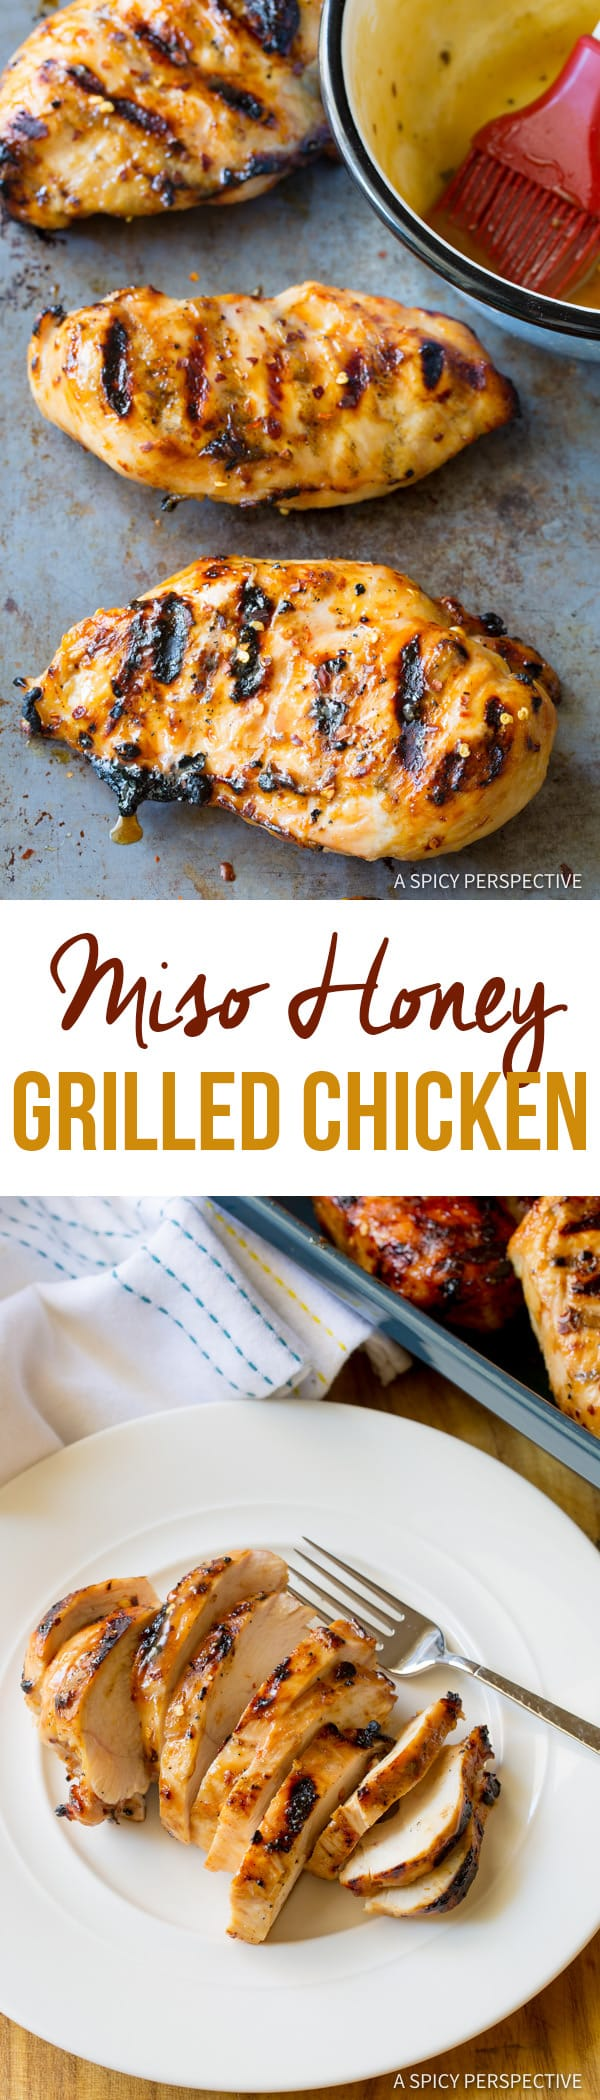 Grilled Miso Honey Chicken Recipe | ASpicyPerspective.com